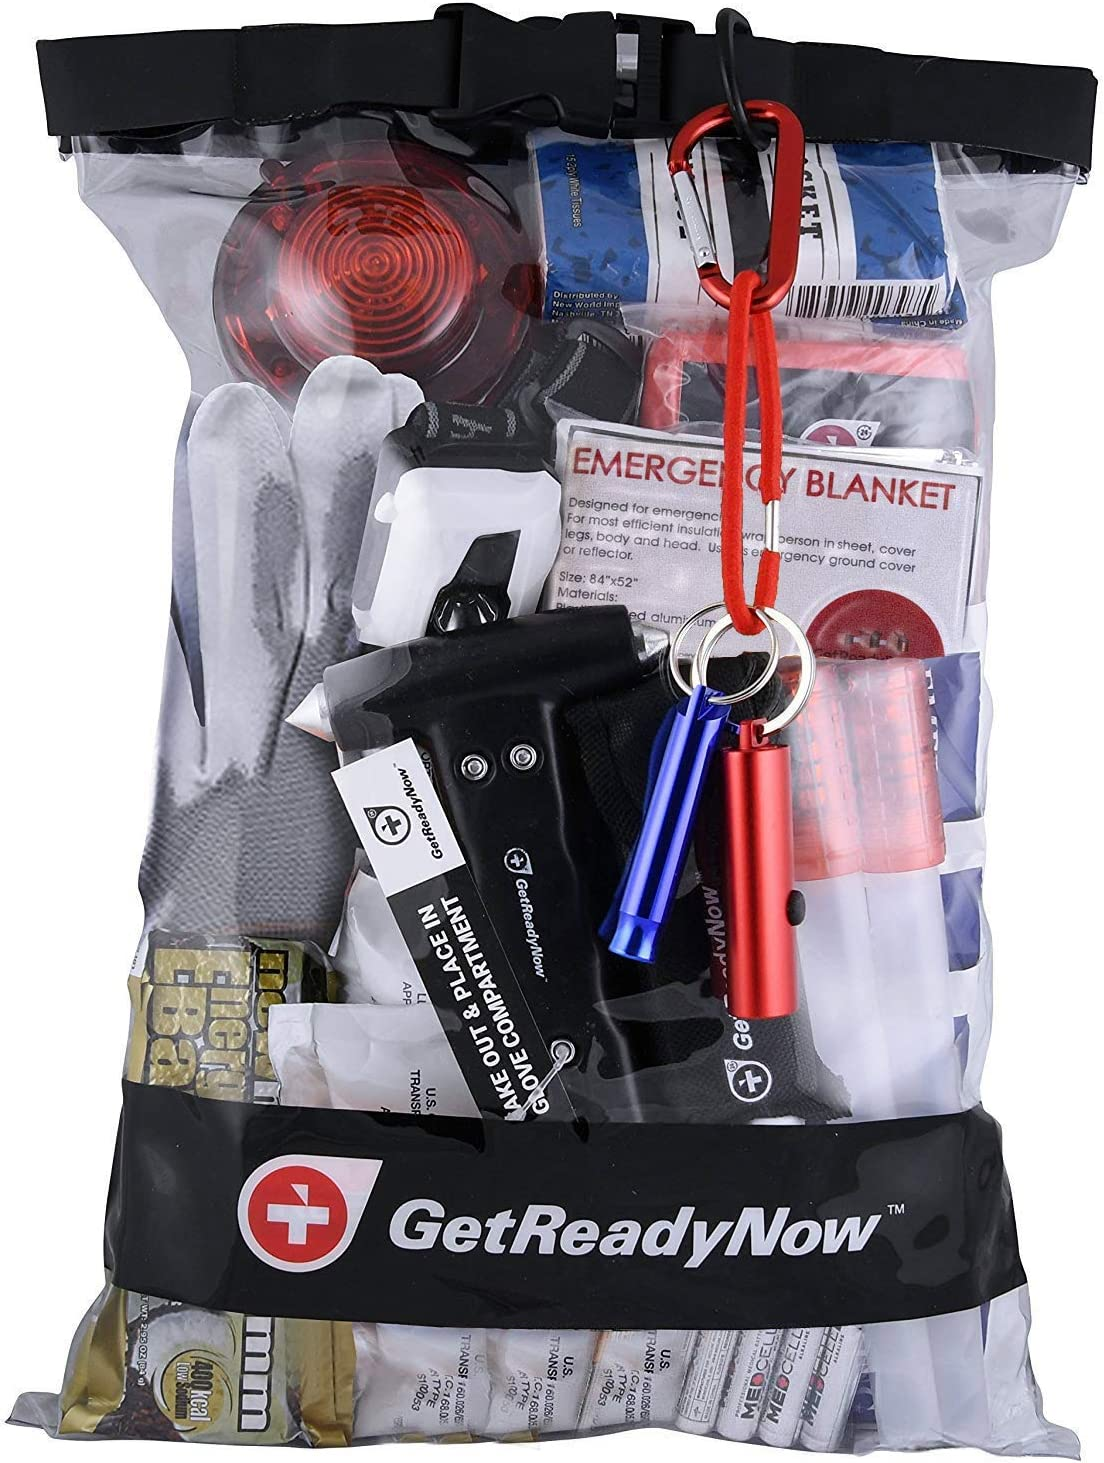 GetReadyNow | Vehicle Emergency Kits Earthquake & Disaster Survival Supplies | Compact, Convenient Design | Clear Waterproof Dry Bag with Emergency Essentials